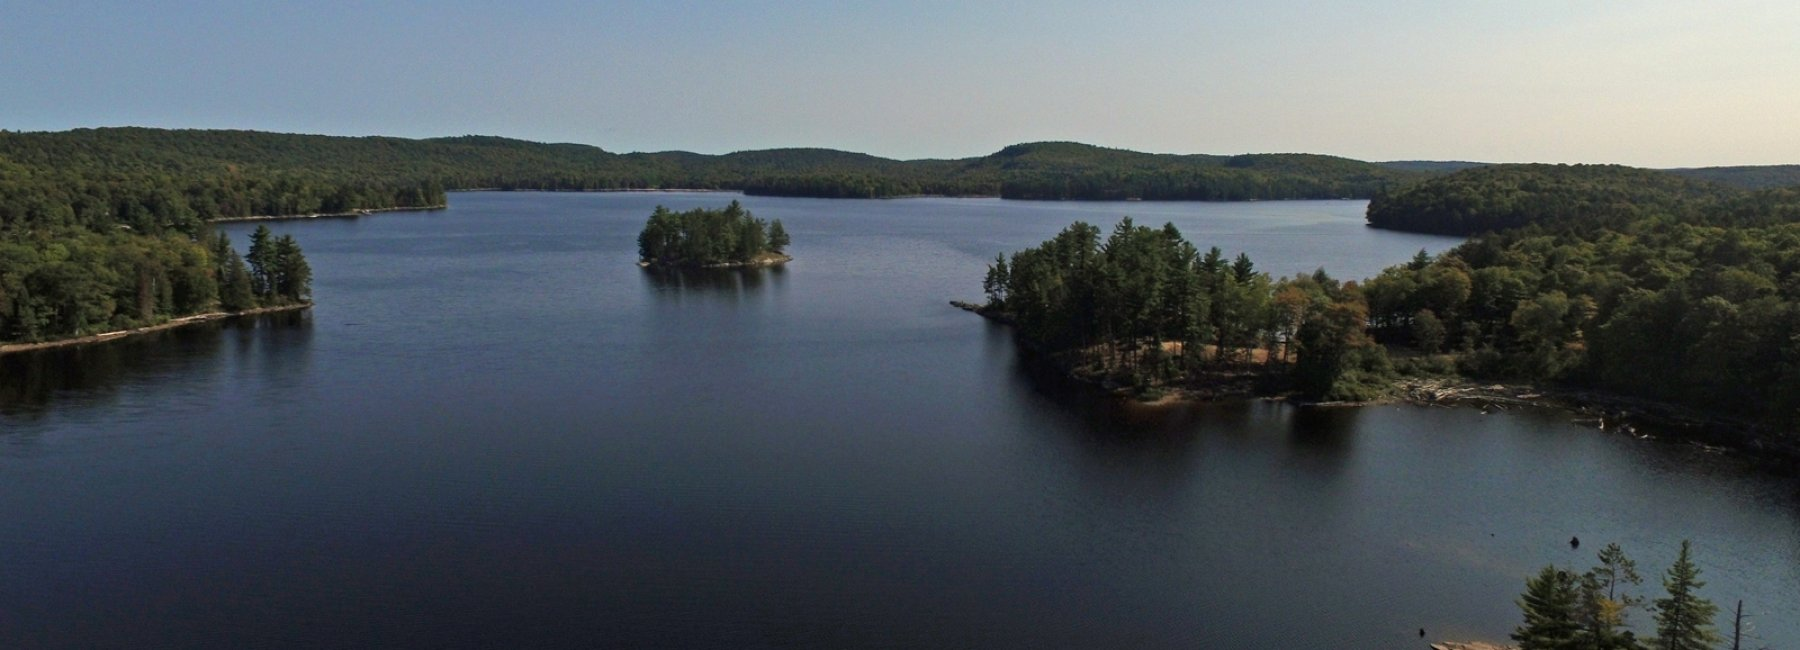 Lot 12, Lone Wolf Crescent, Percy Lake, Haliburton